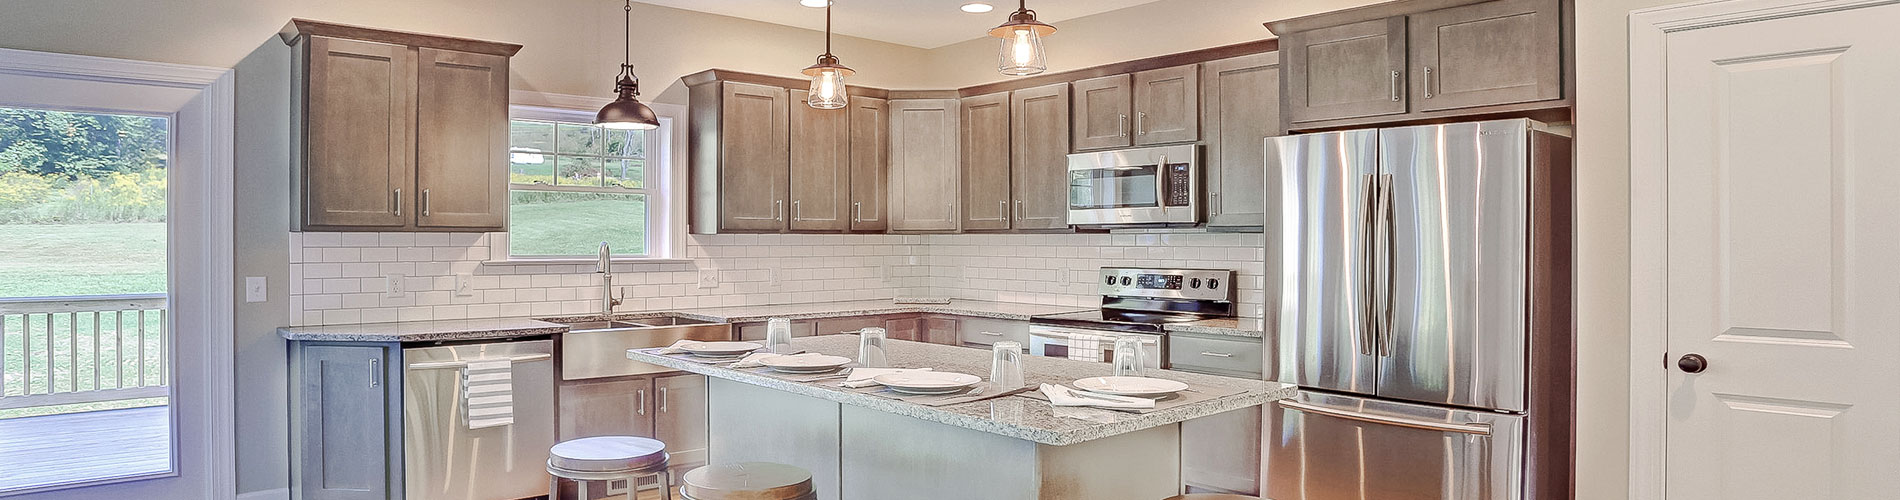 kitchen upgrades cabinets on a budget the best for resale wsl incorporated